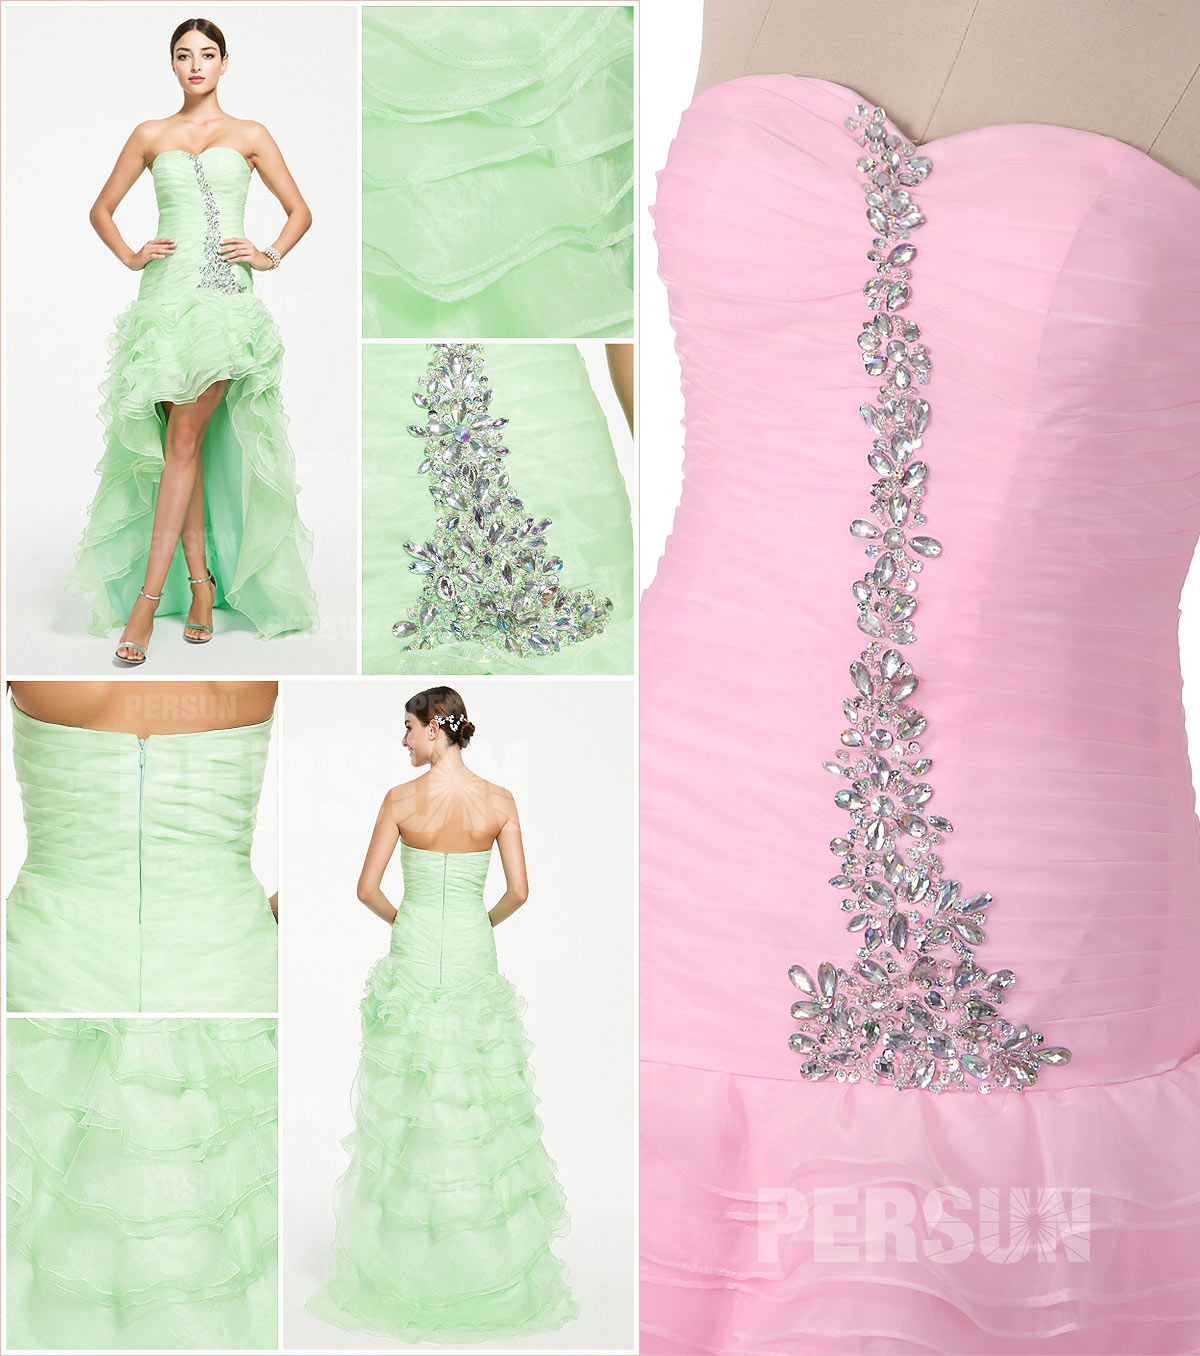 Trendy High low Formal Cocktail Dress in Green tone with Beading Details front and back design details from Dressesmallau